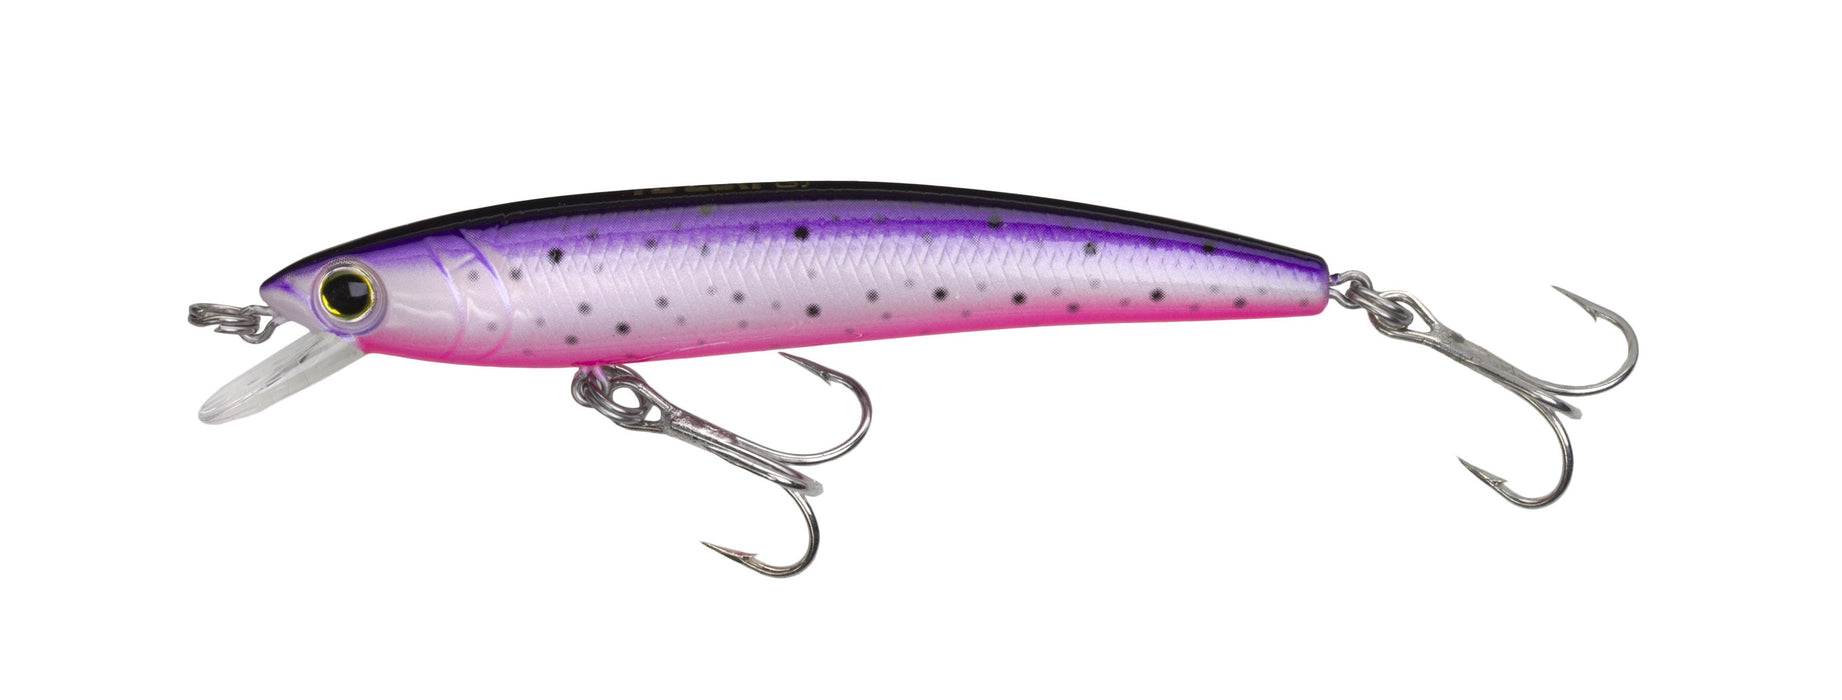 Yo-Zuri Pins Minnow Floating Shallow Diver